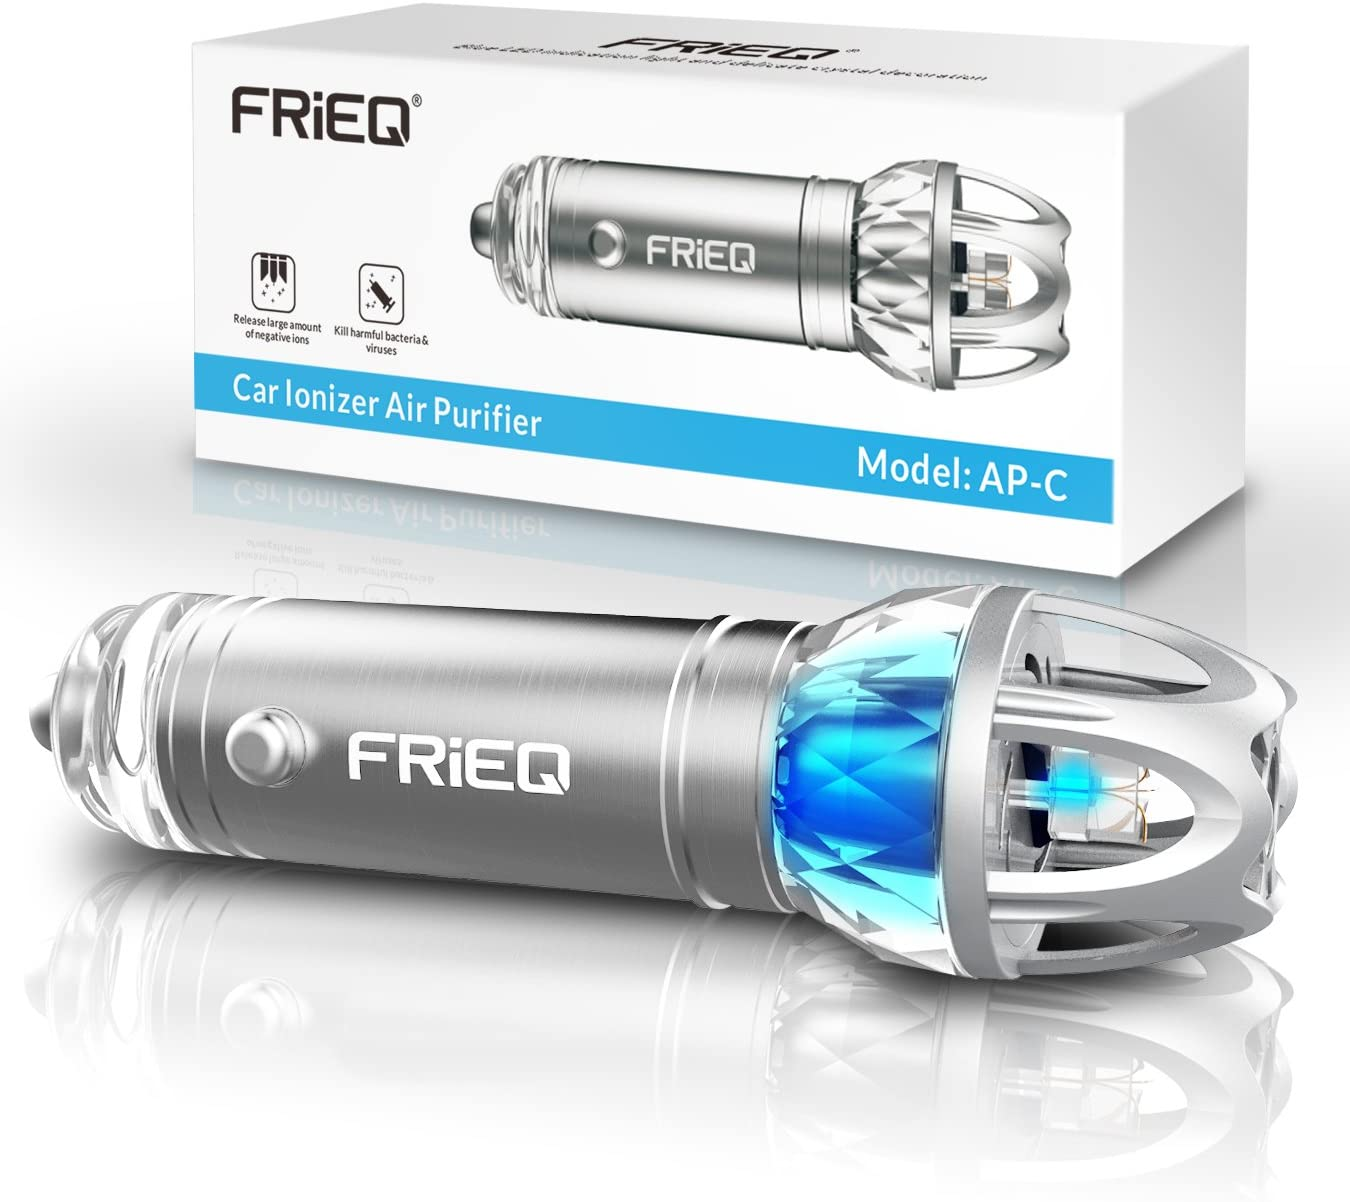 FRiEQ Car Air Purifier, Car Air Freshener and Ionic Air Purifier   Remove Dust, Pollen, Smoke and Bad Odors - Available for Your Auto or RV